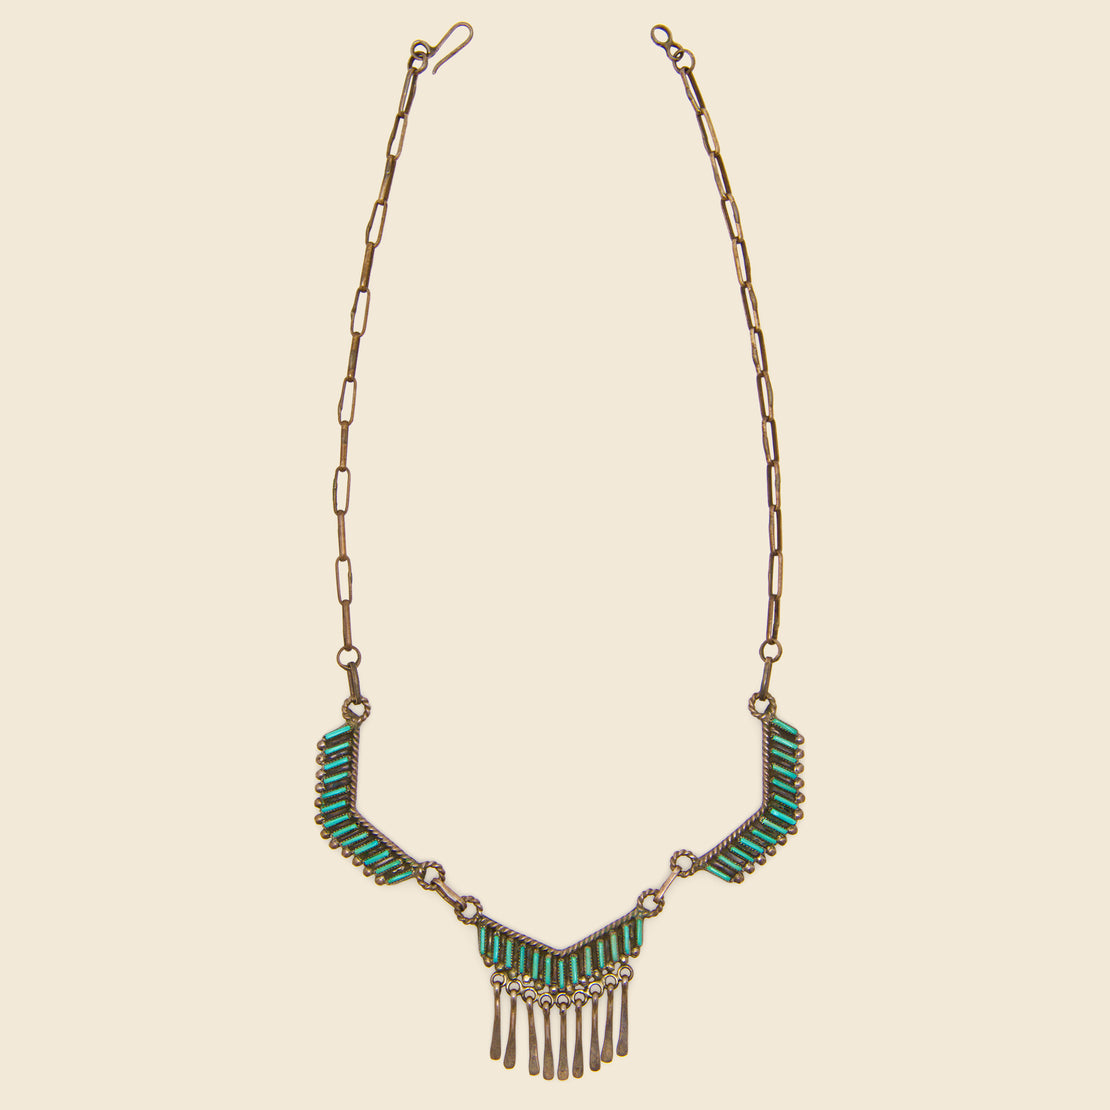 Vintage Pieced Necklace - Silver & Turquoise